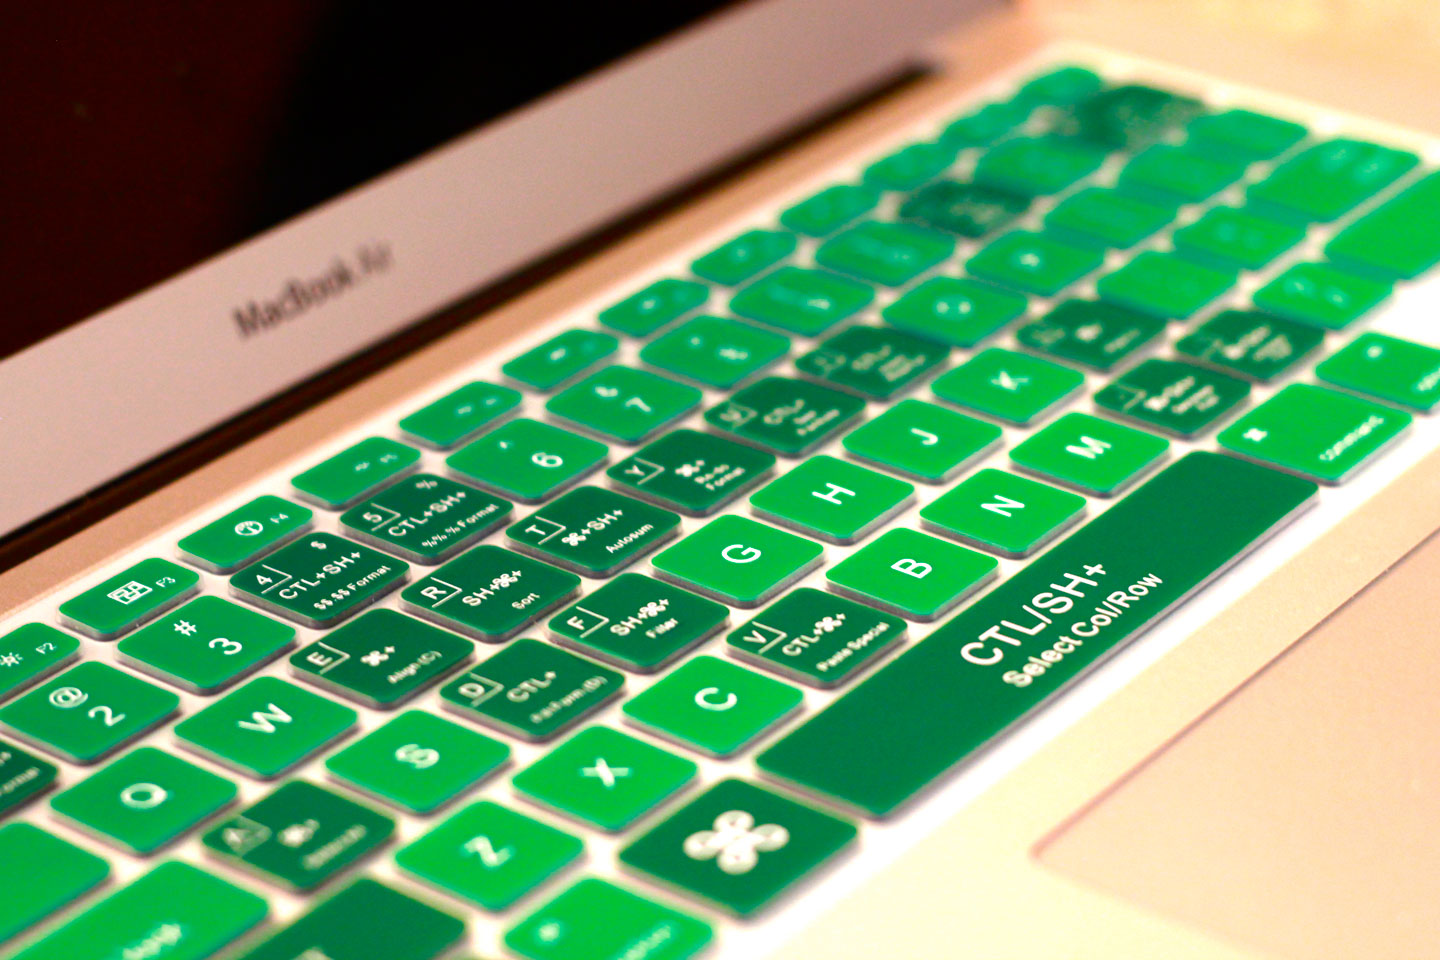 Emerald Green Keyboard Cover - KeyCuts Keyboard Covers for Mac Excel